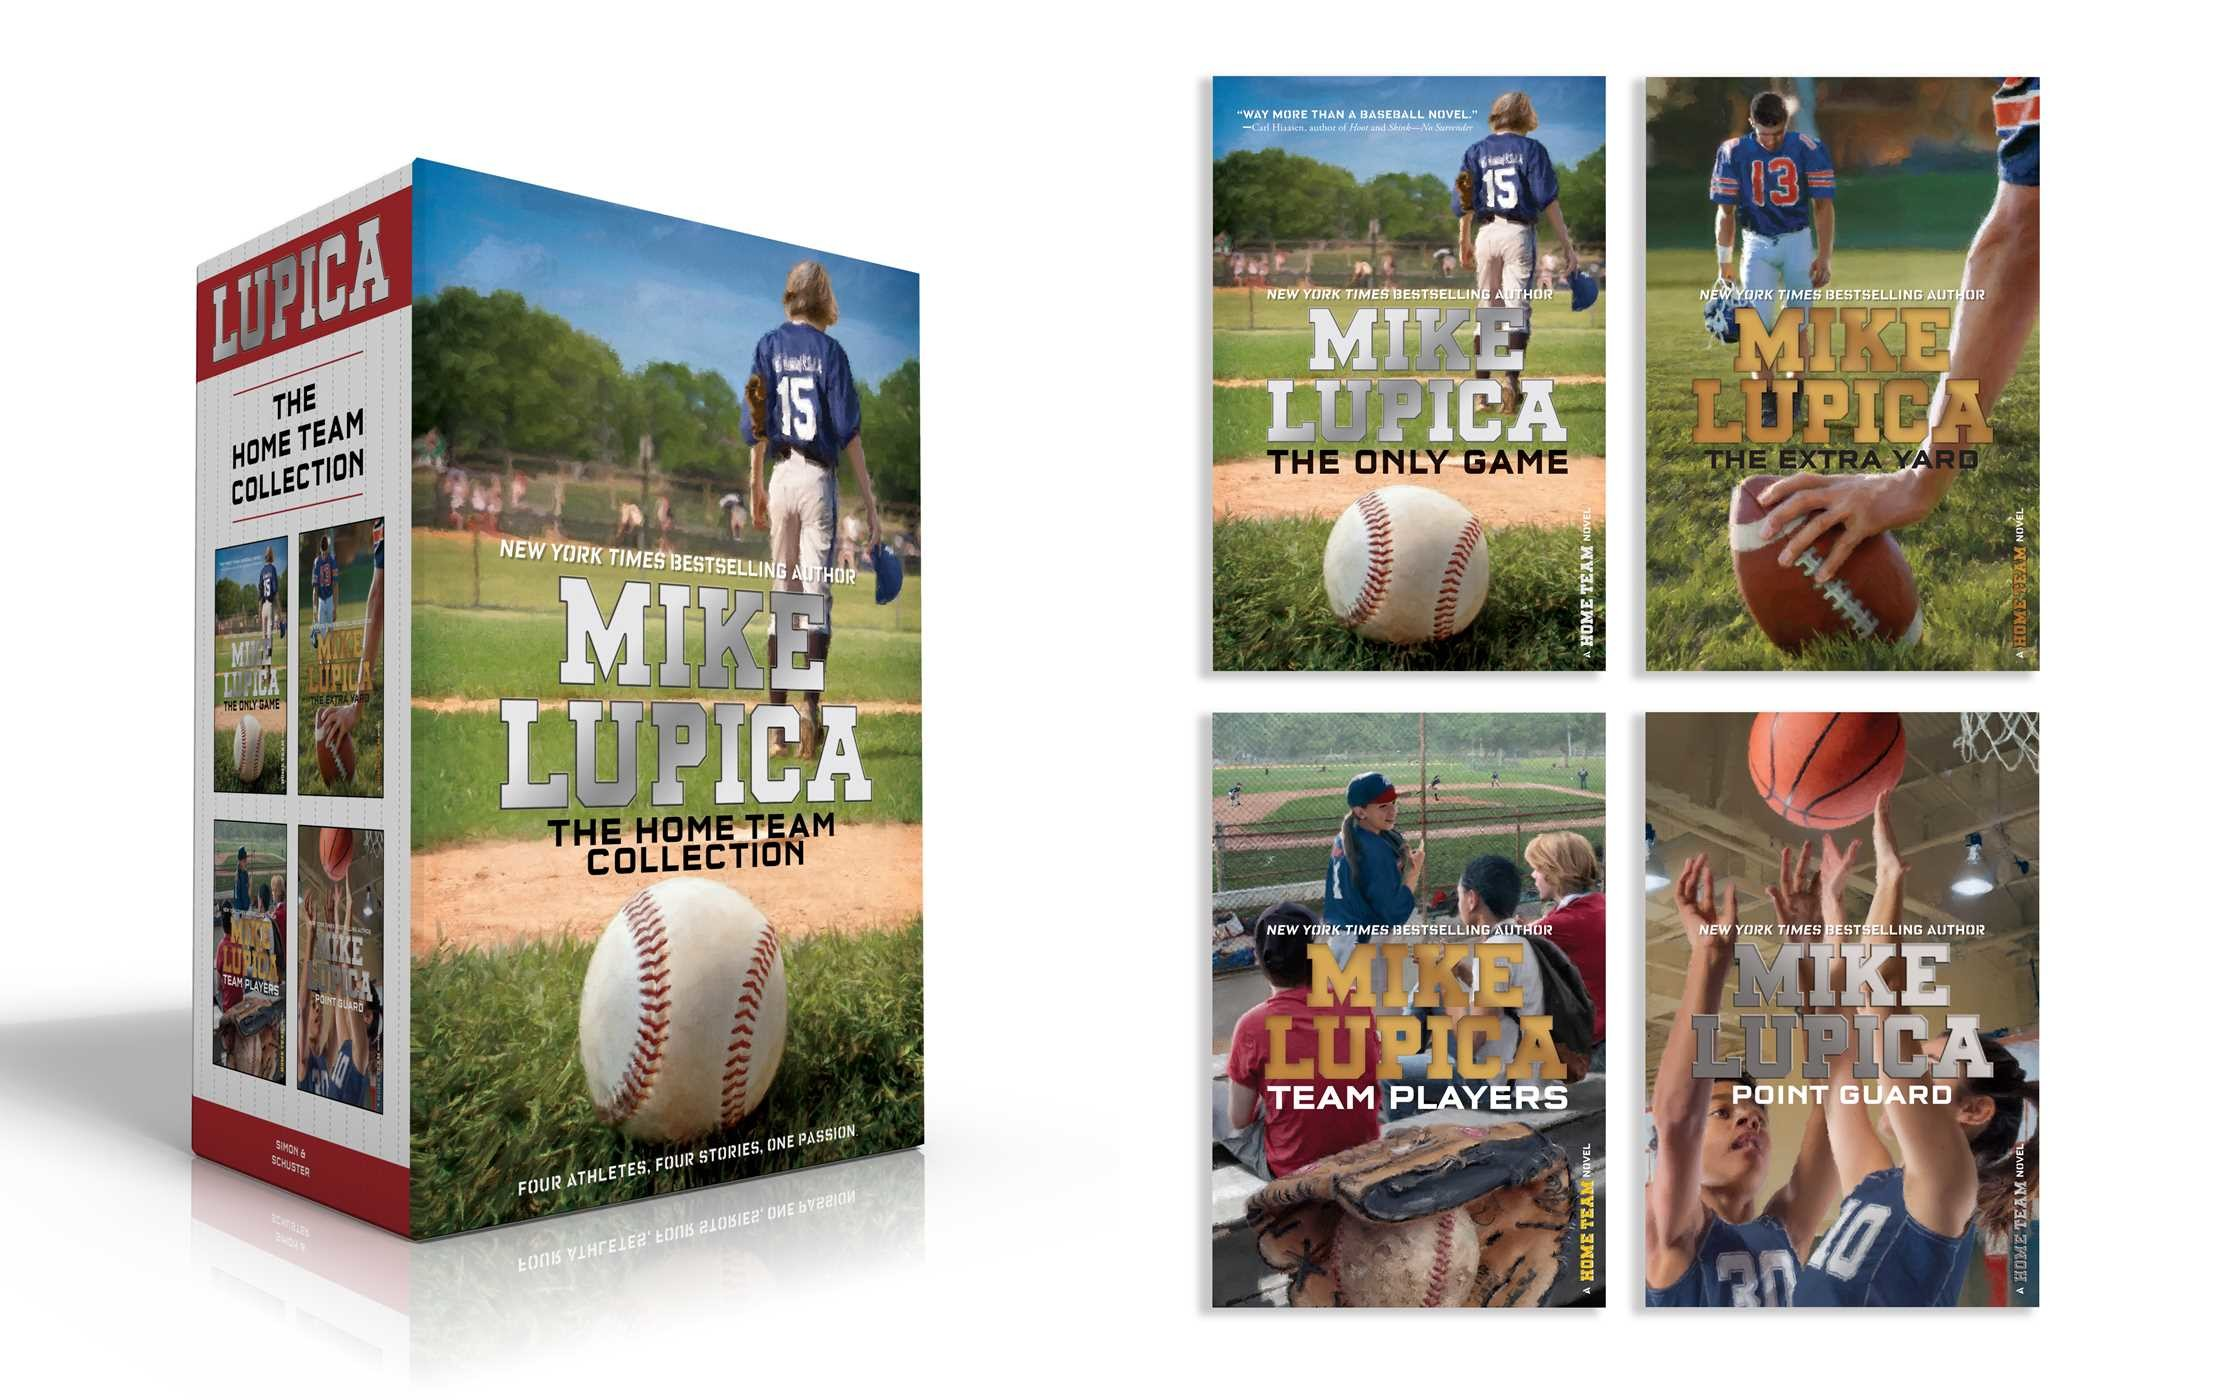 The home team collection 9781534428058.in01